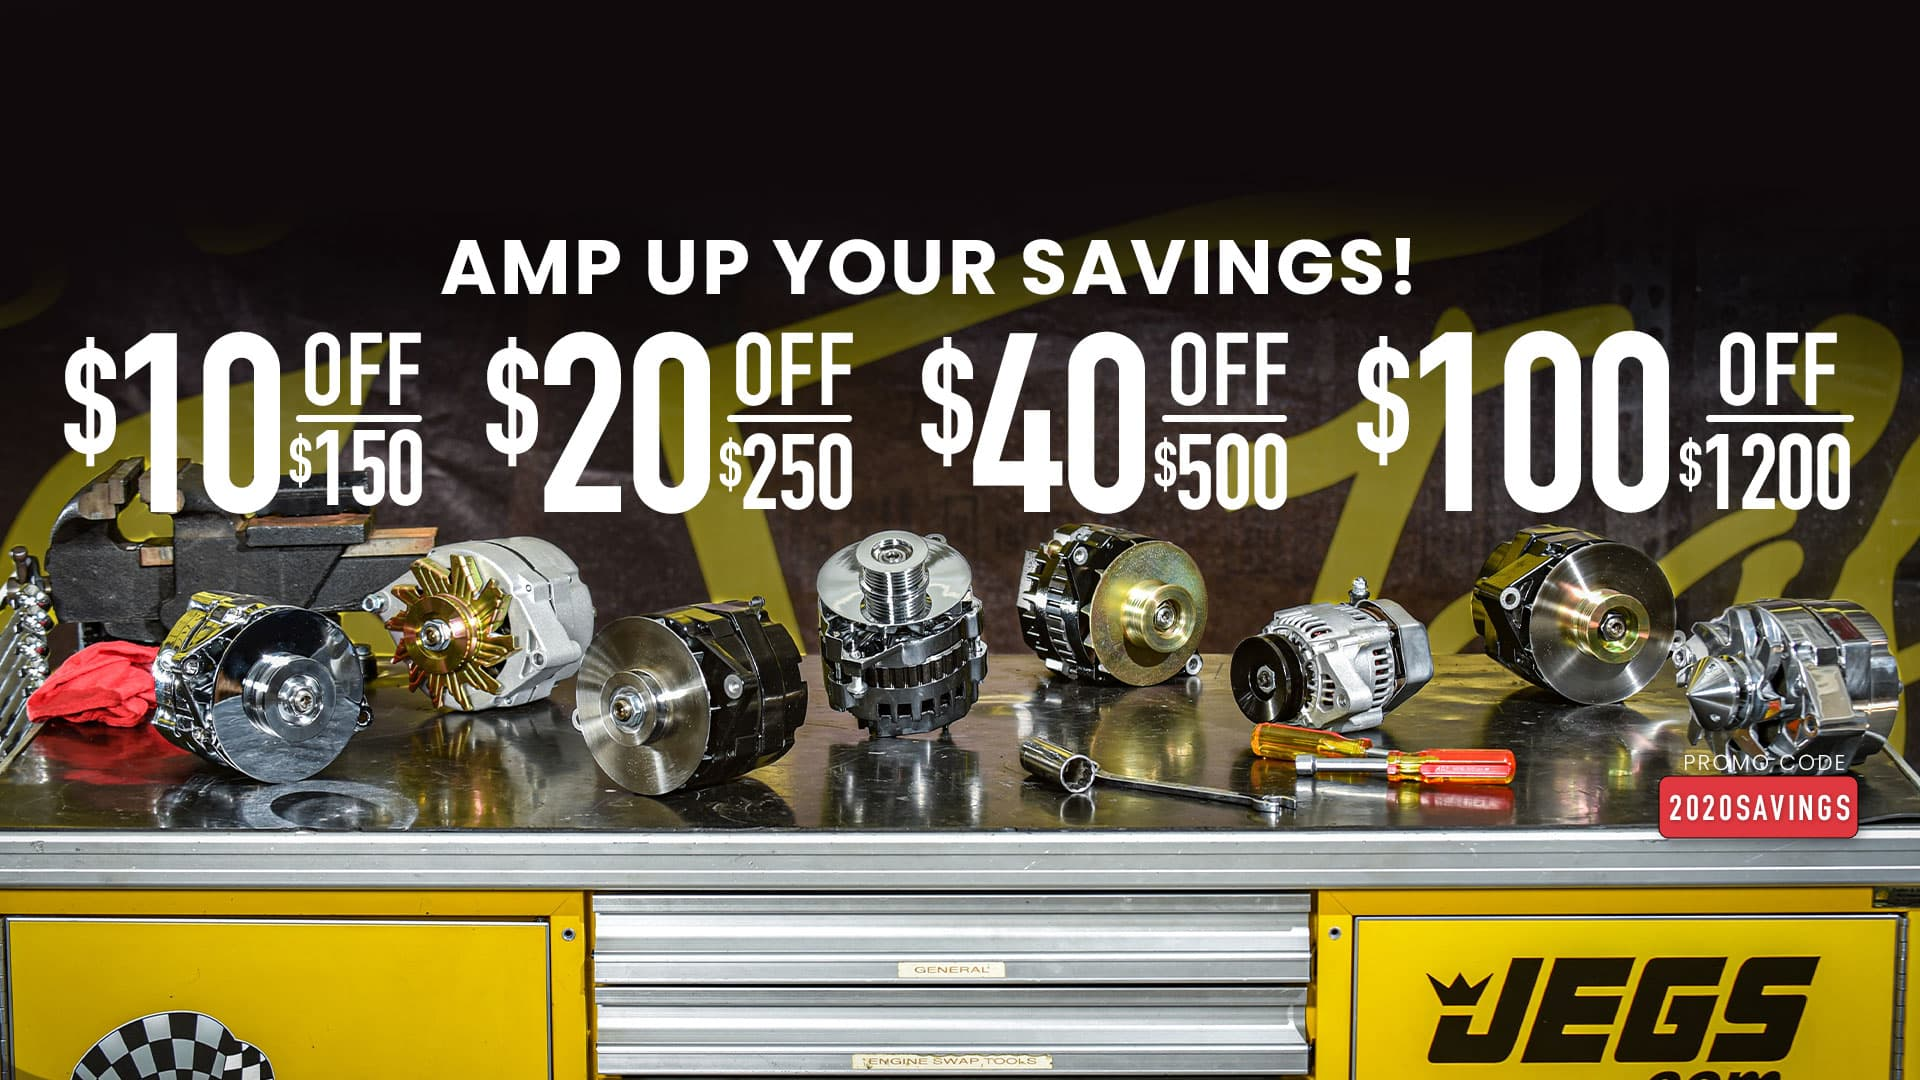 Save $10 Off $150, $20 Off $250, $40 Off $500, $100 Off $1,200 Orders